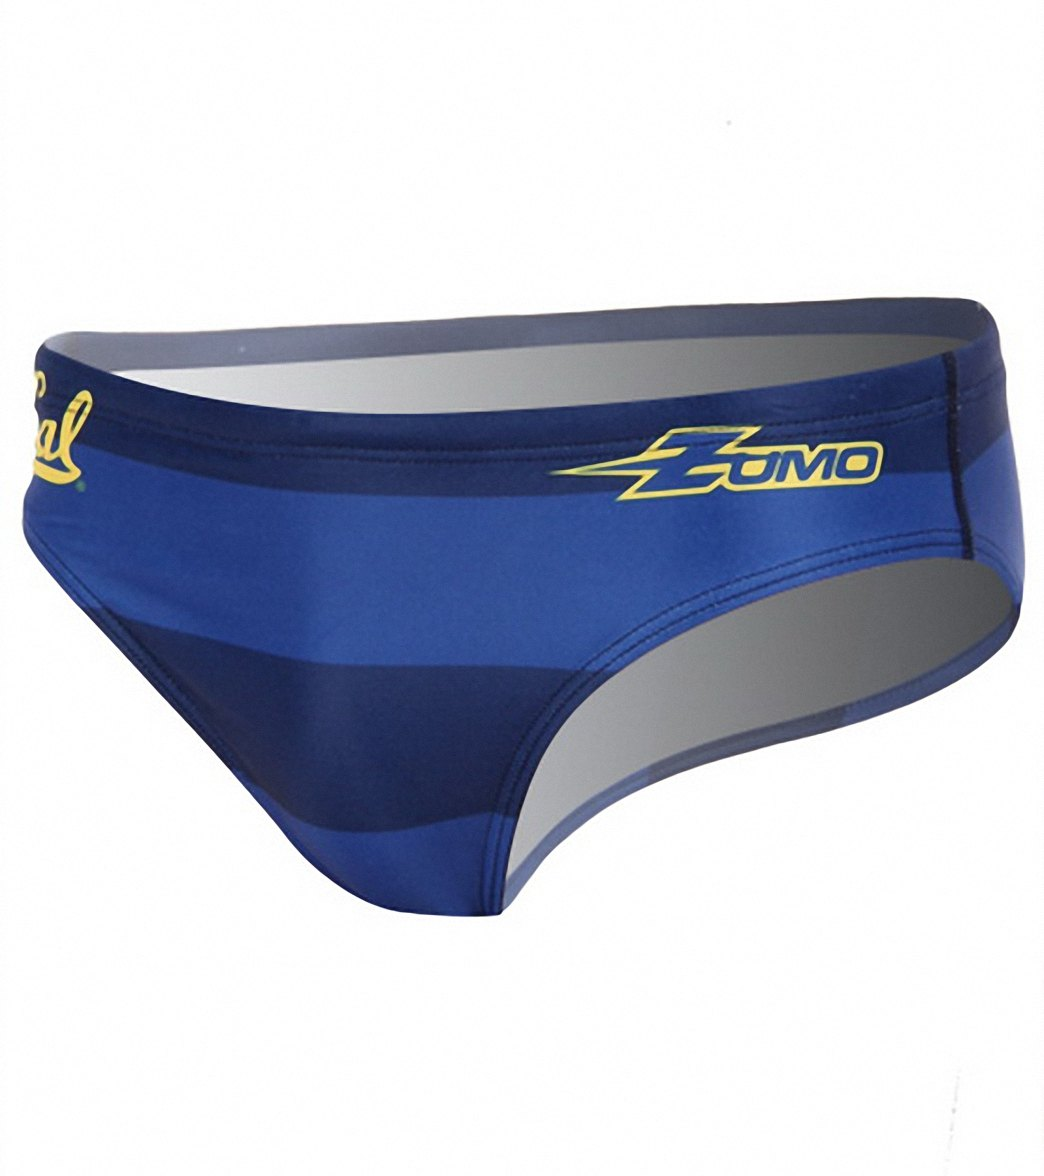 b9e873e714 Zumo Officially Licensed UC Berkeley Men's Water Polo Suit at ...